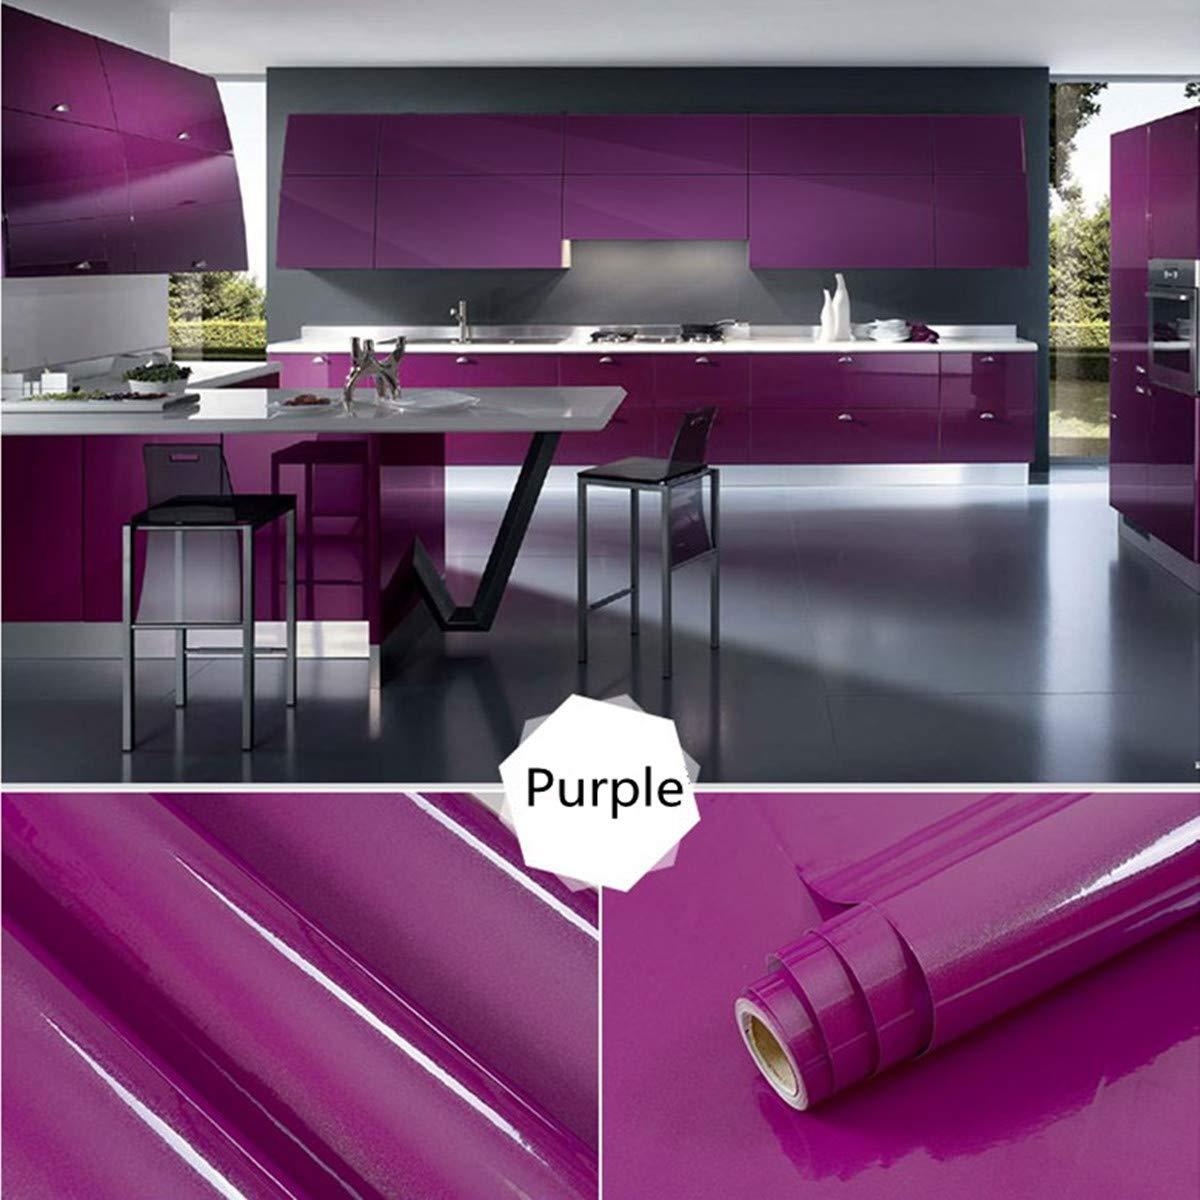 Nasmodo® Multipurpose PVC Wall Papers, Vinyl Contact Paper self Adhesive for Furniture Waterproof Kitchen cabinets Removable Peel and Sticker Wallpaper Bedroom Living Room.